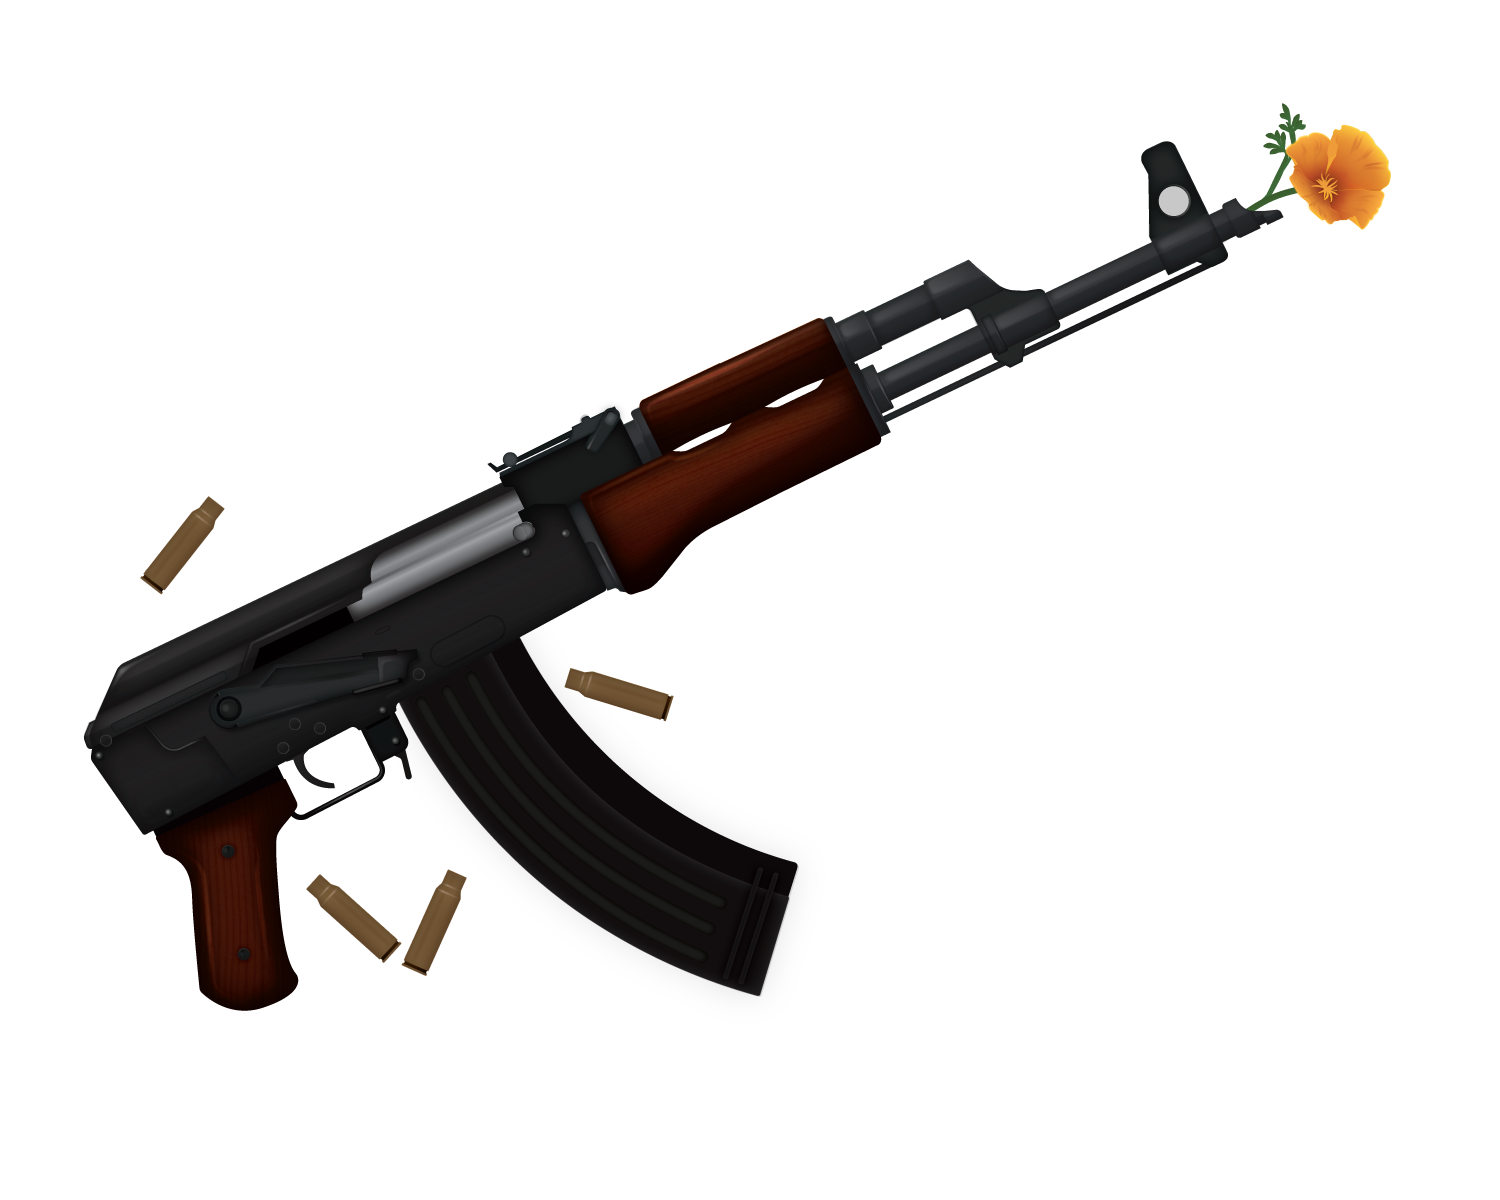 An illustration of an AK-47